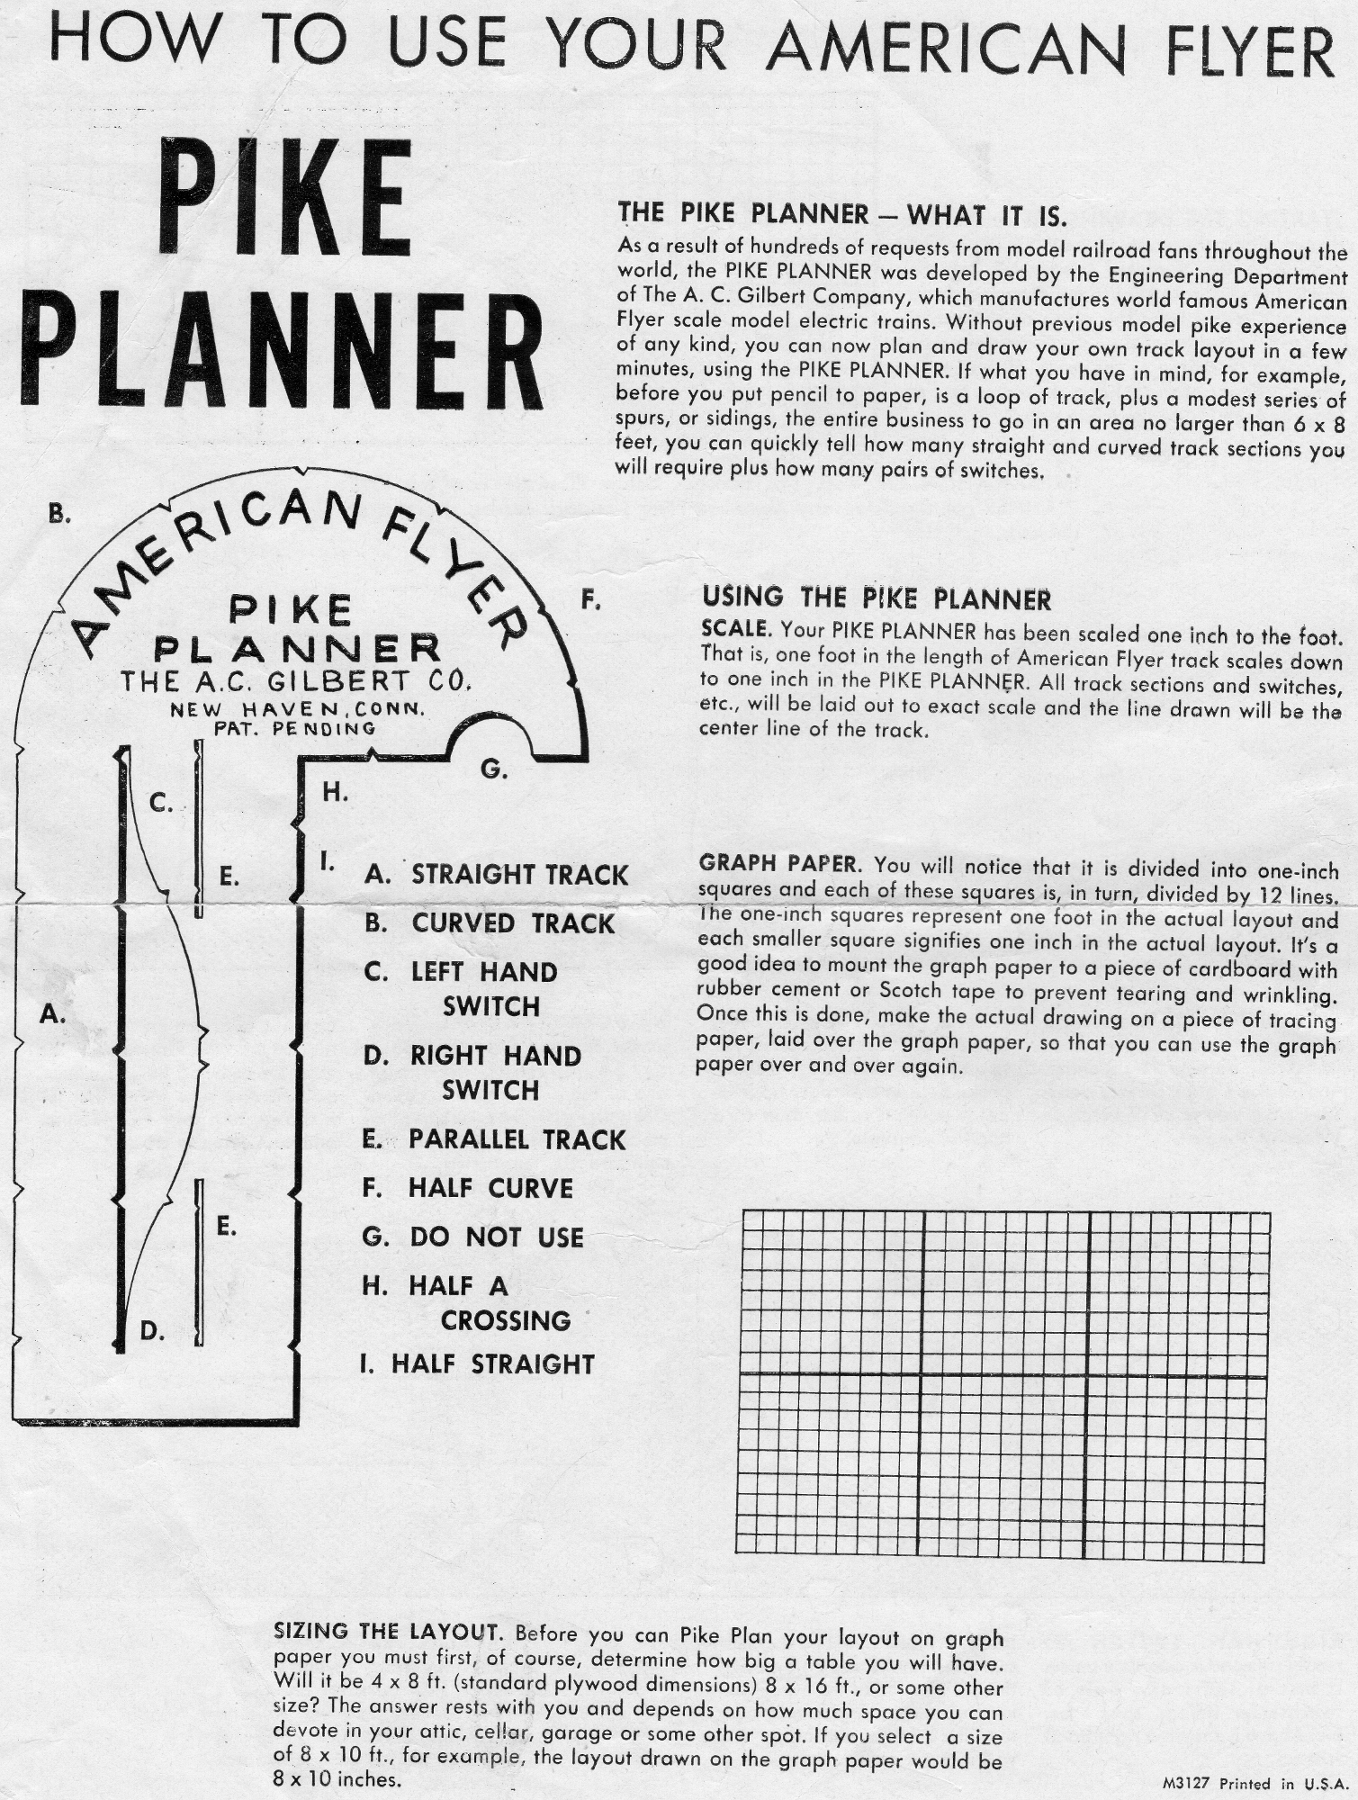 American Flyer Pike Planner - Page 1